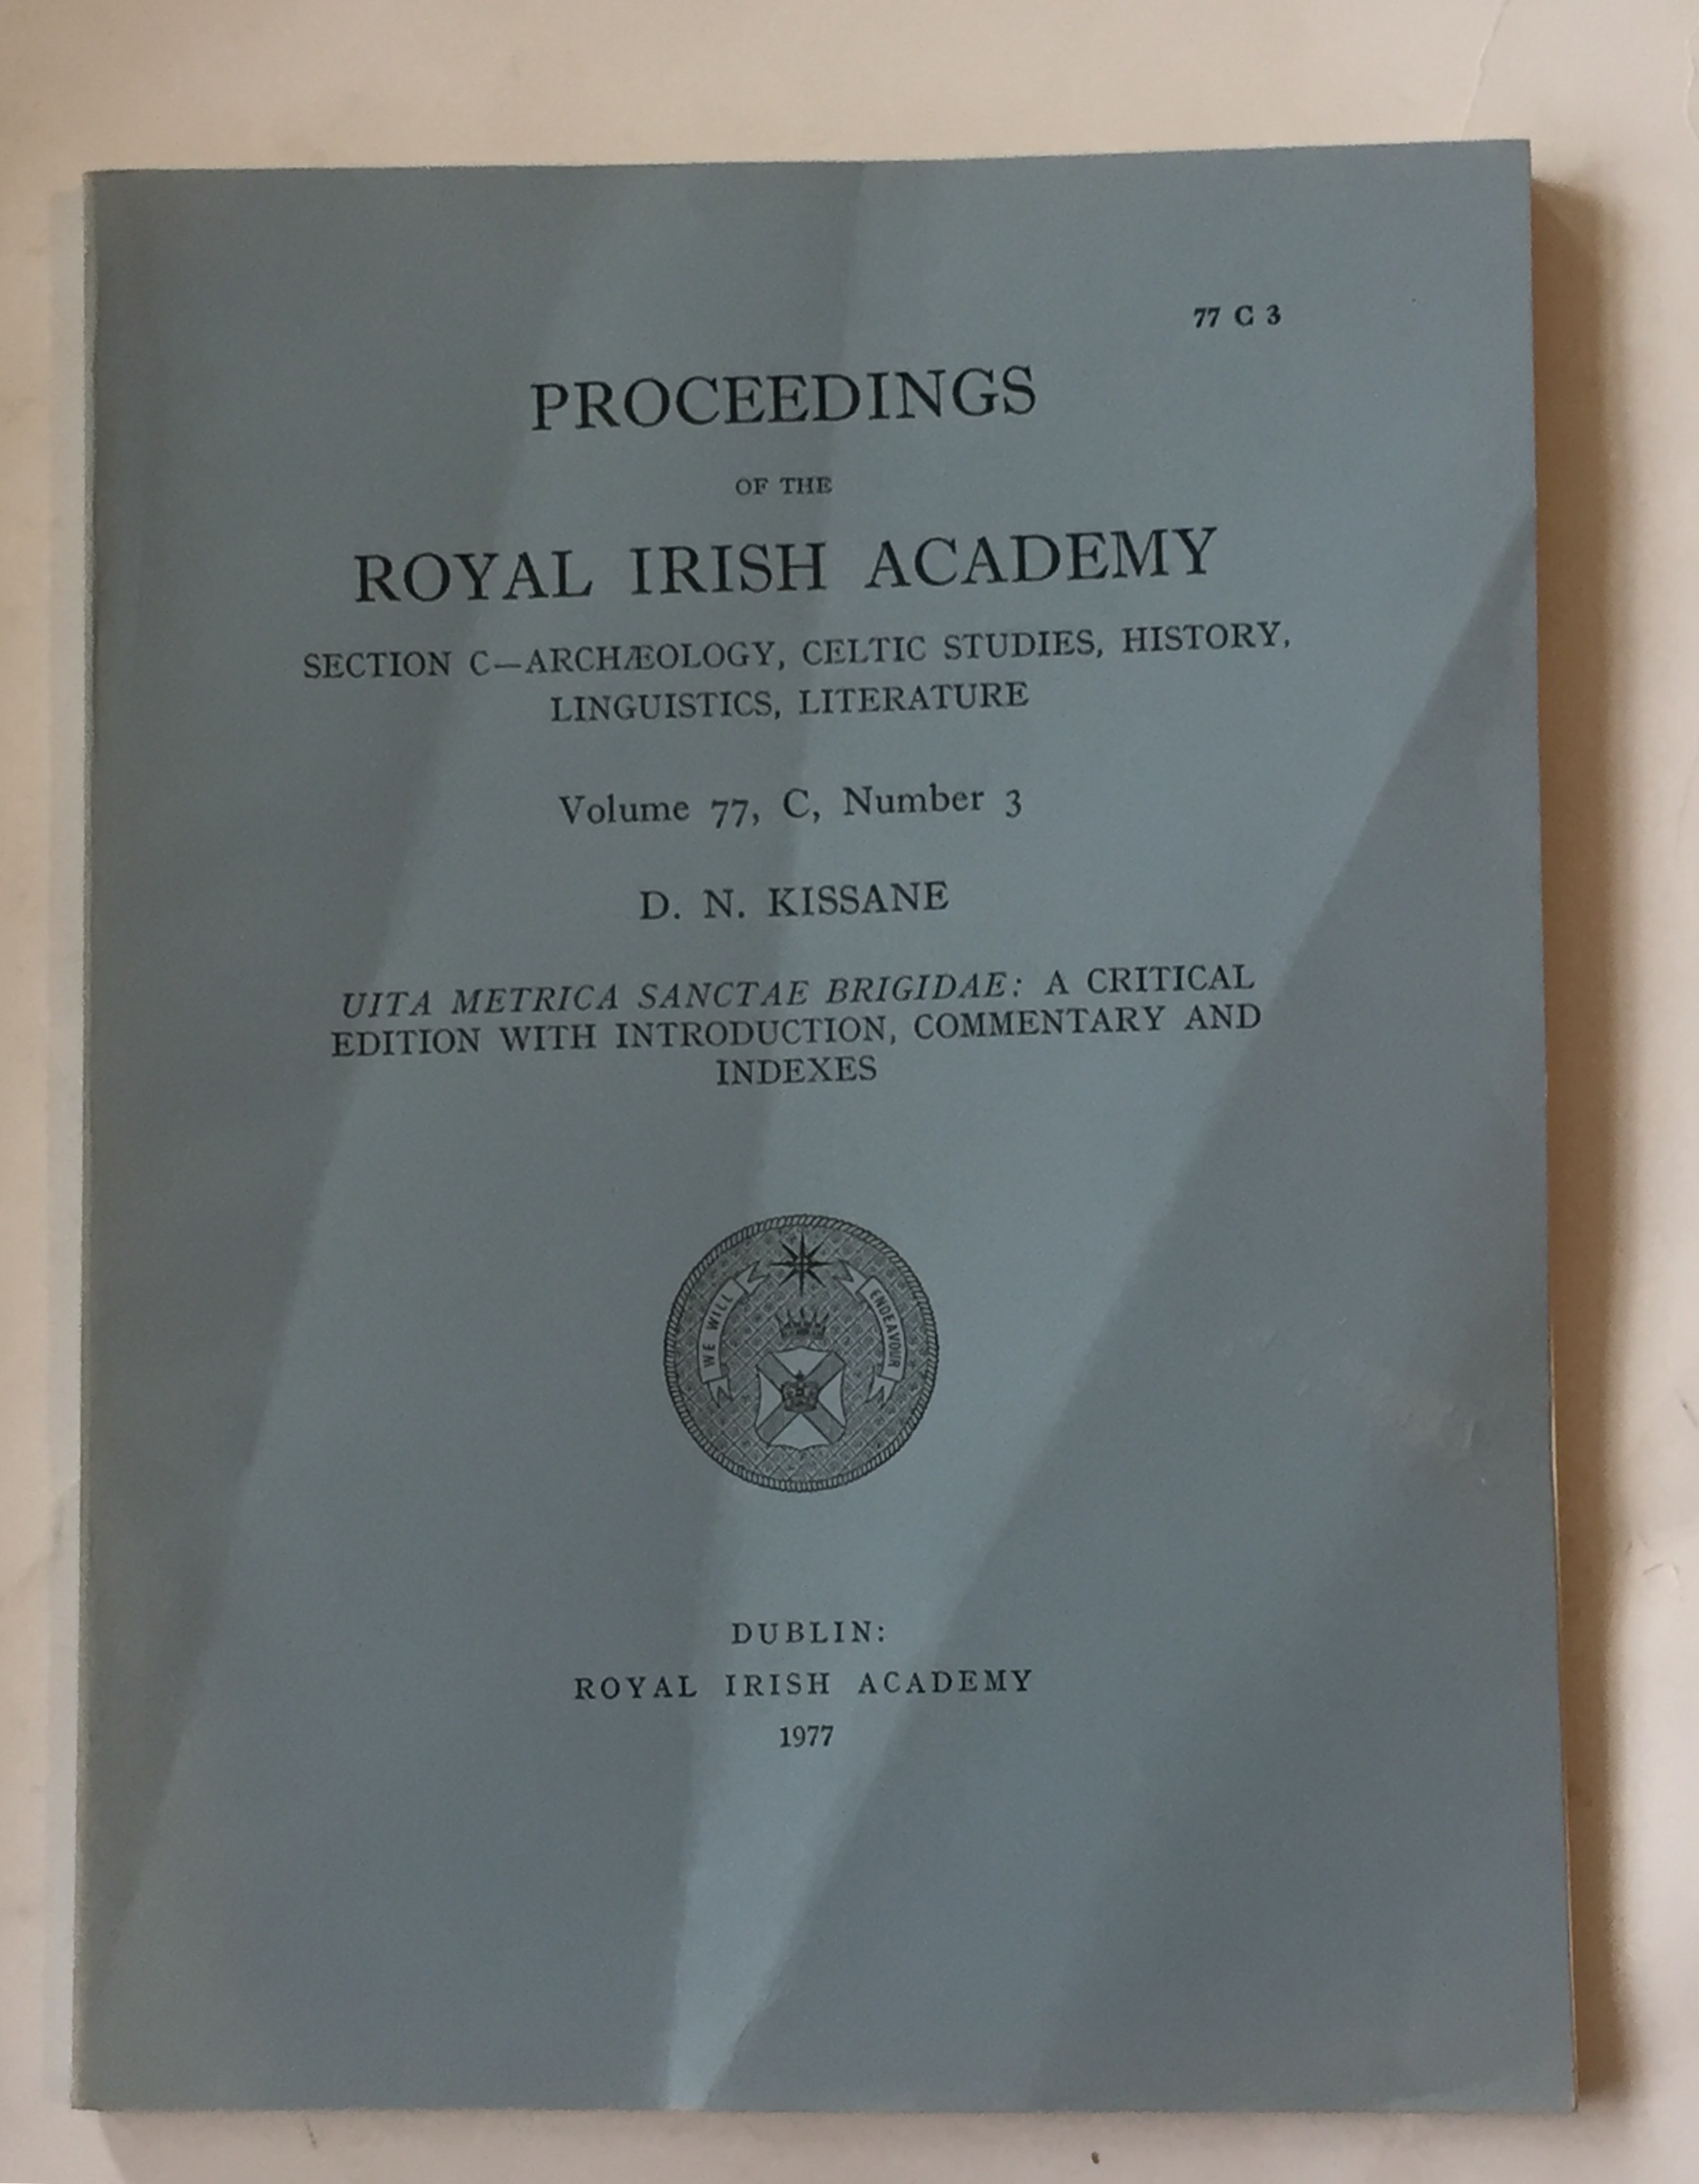 Image for Proceedings of the Royal Irish Academy, Volume 77, Section C, No. 3 :Uita metrica sanctae brigidae: A critical edition with introduction, commentary and indexes